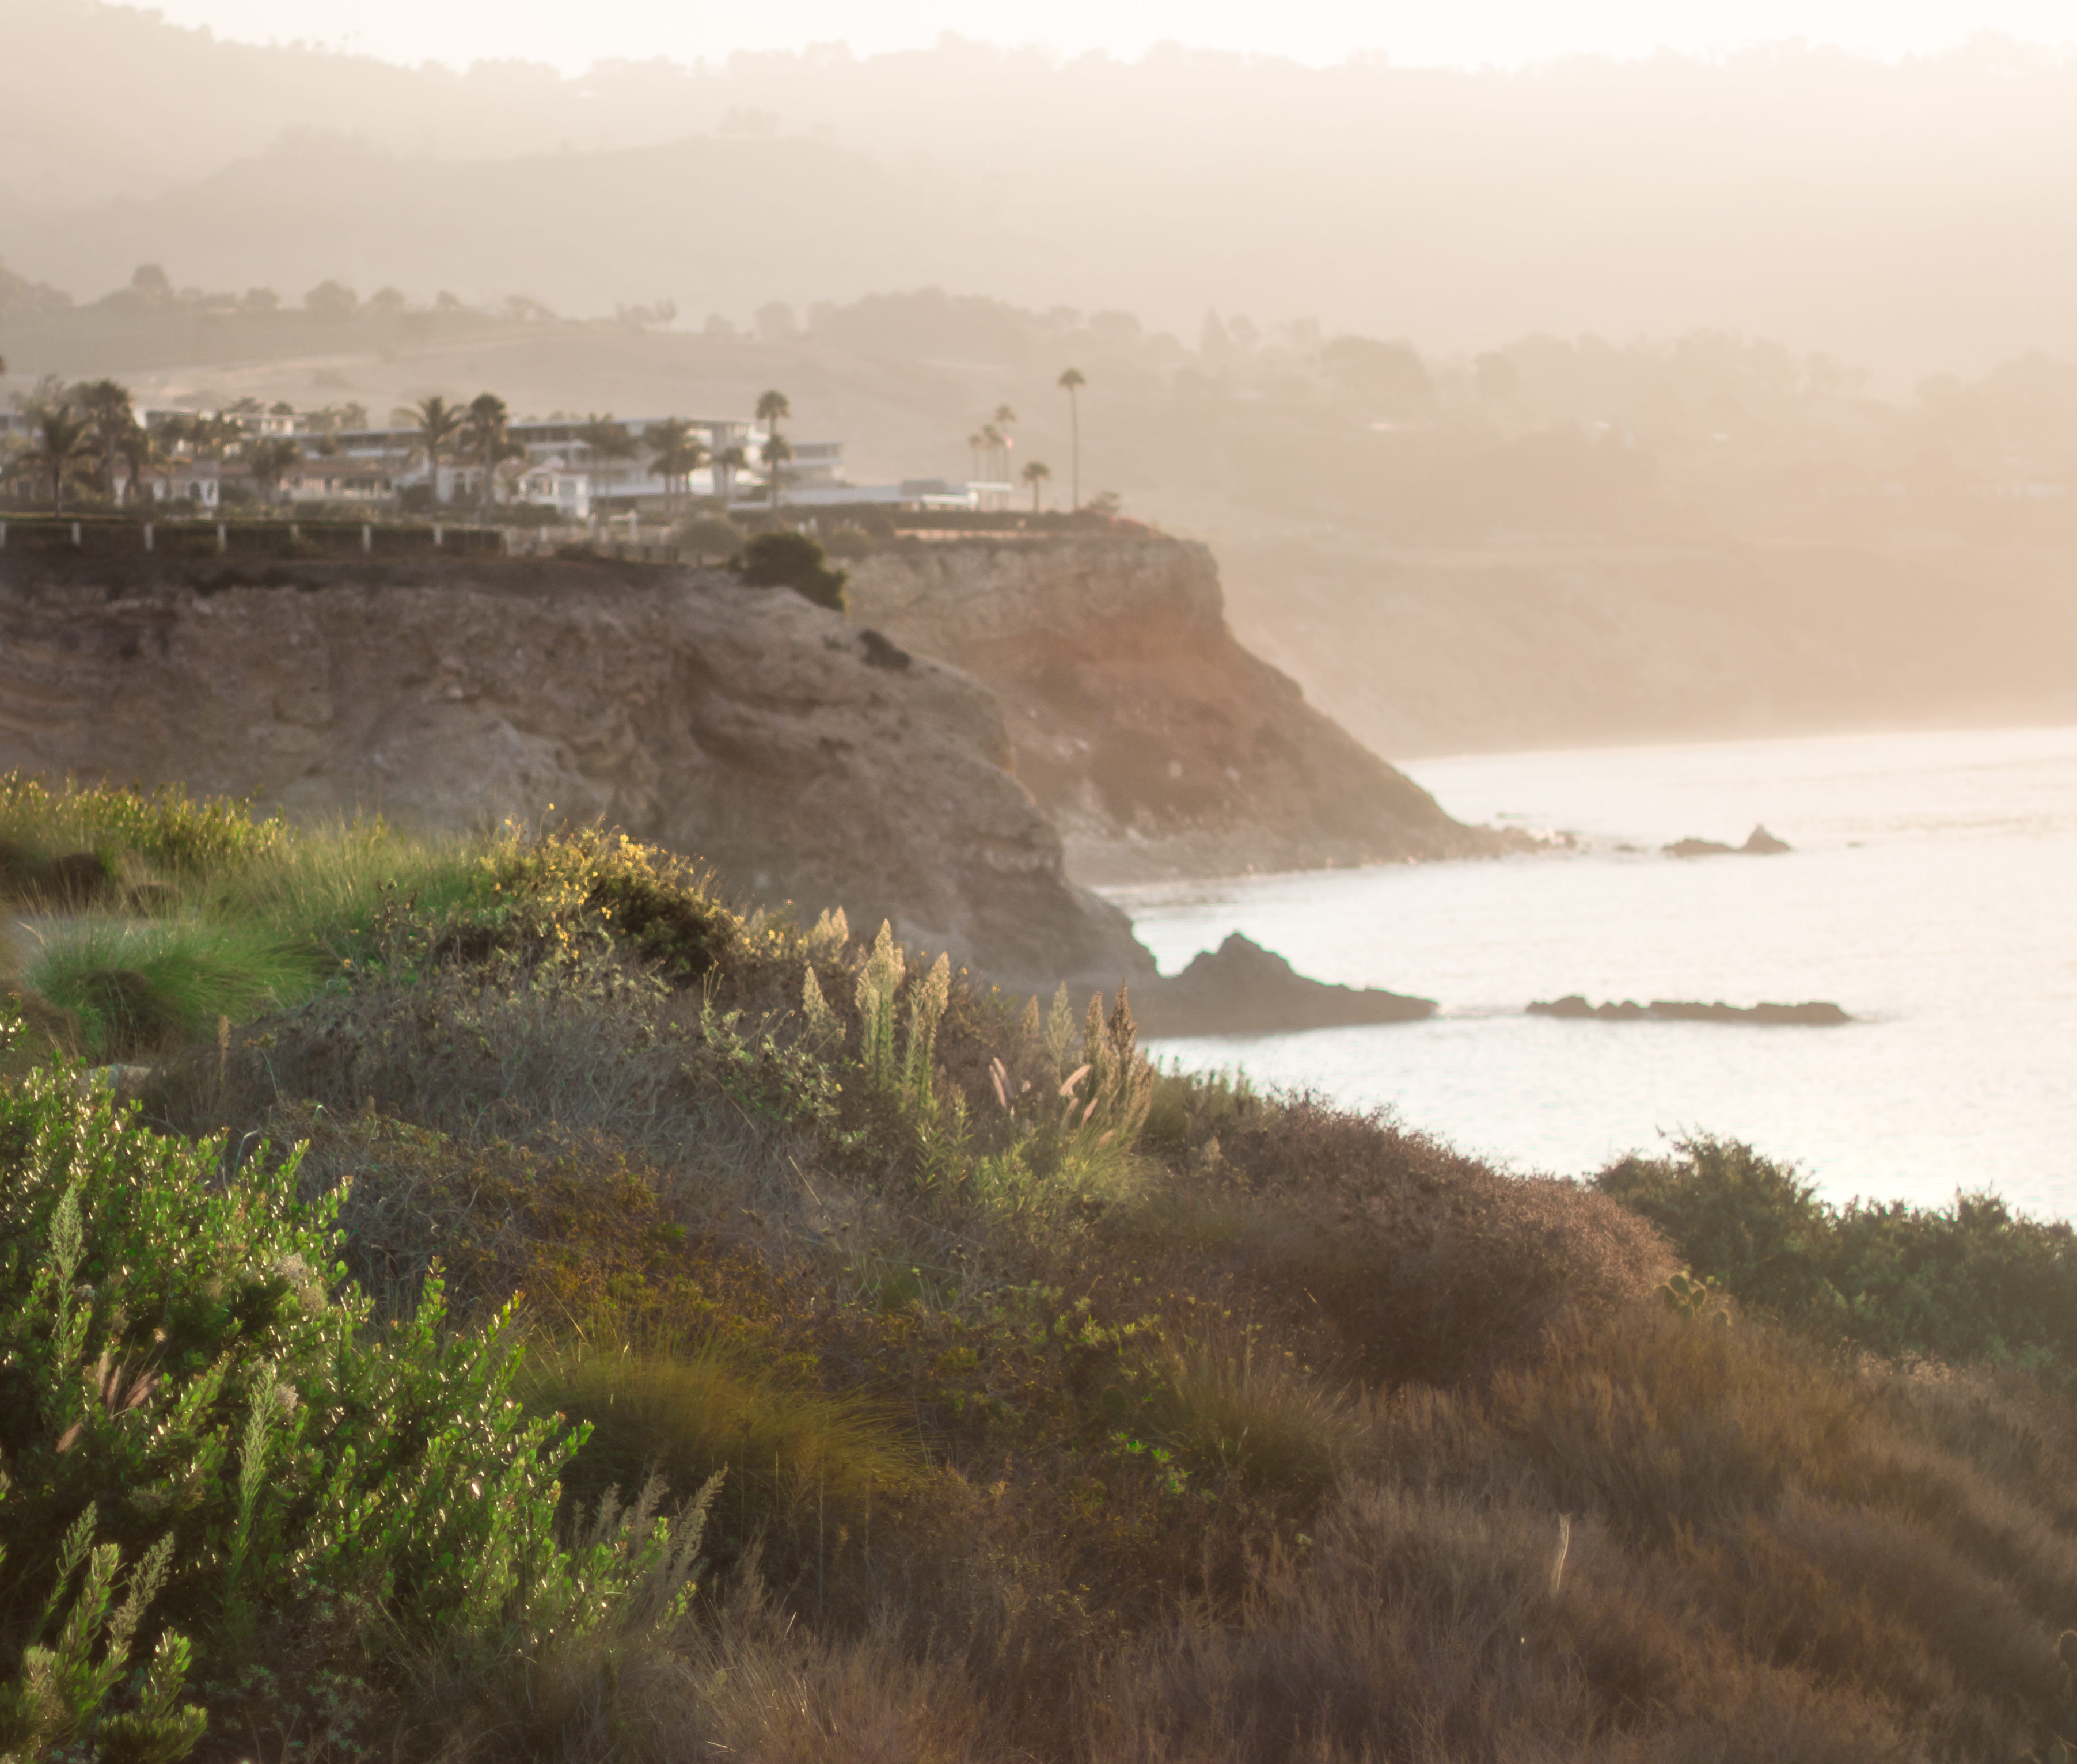 Morning landscape shots at Terranea